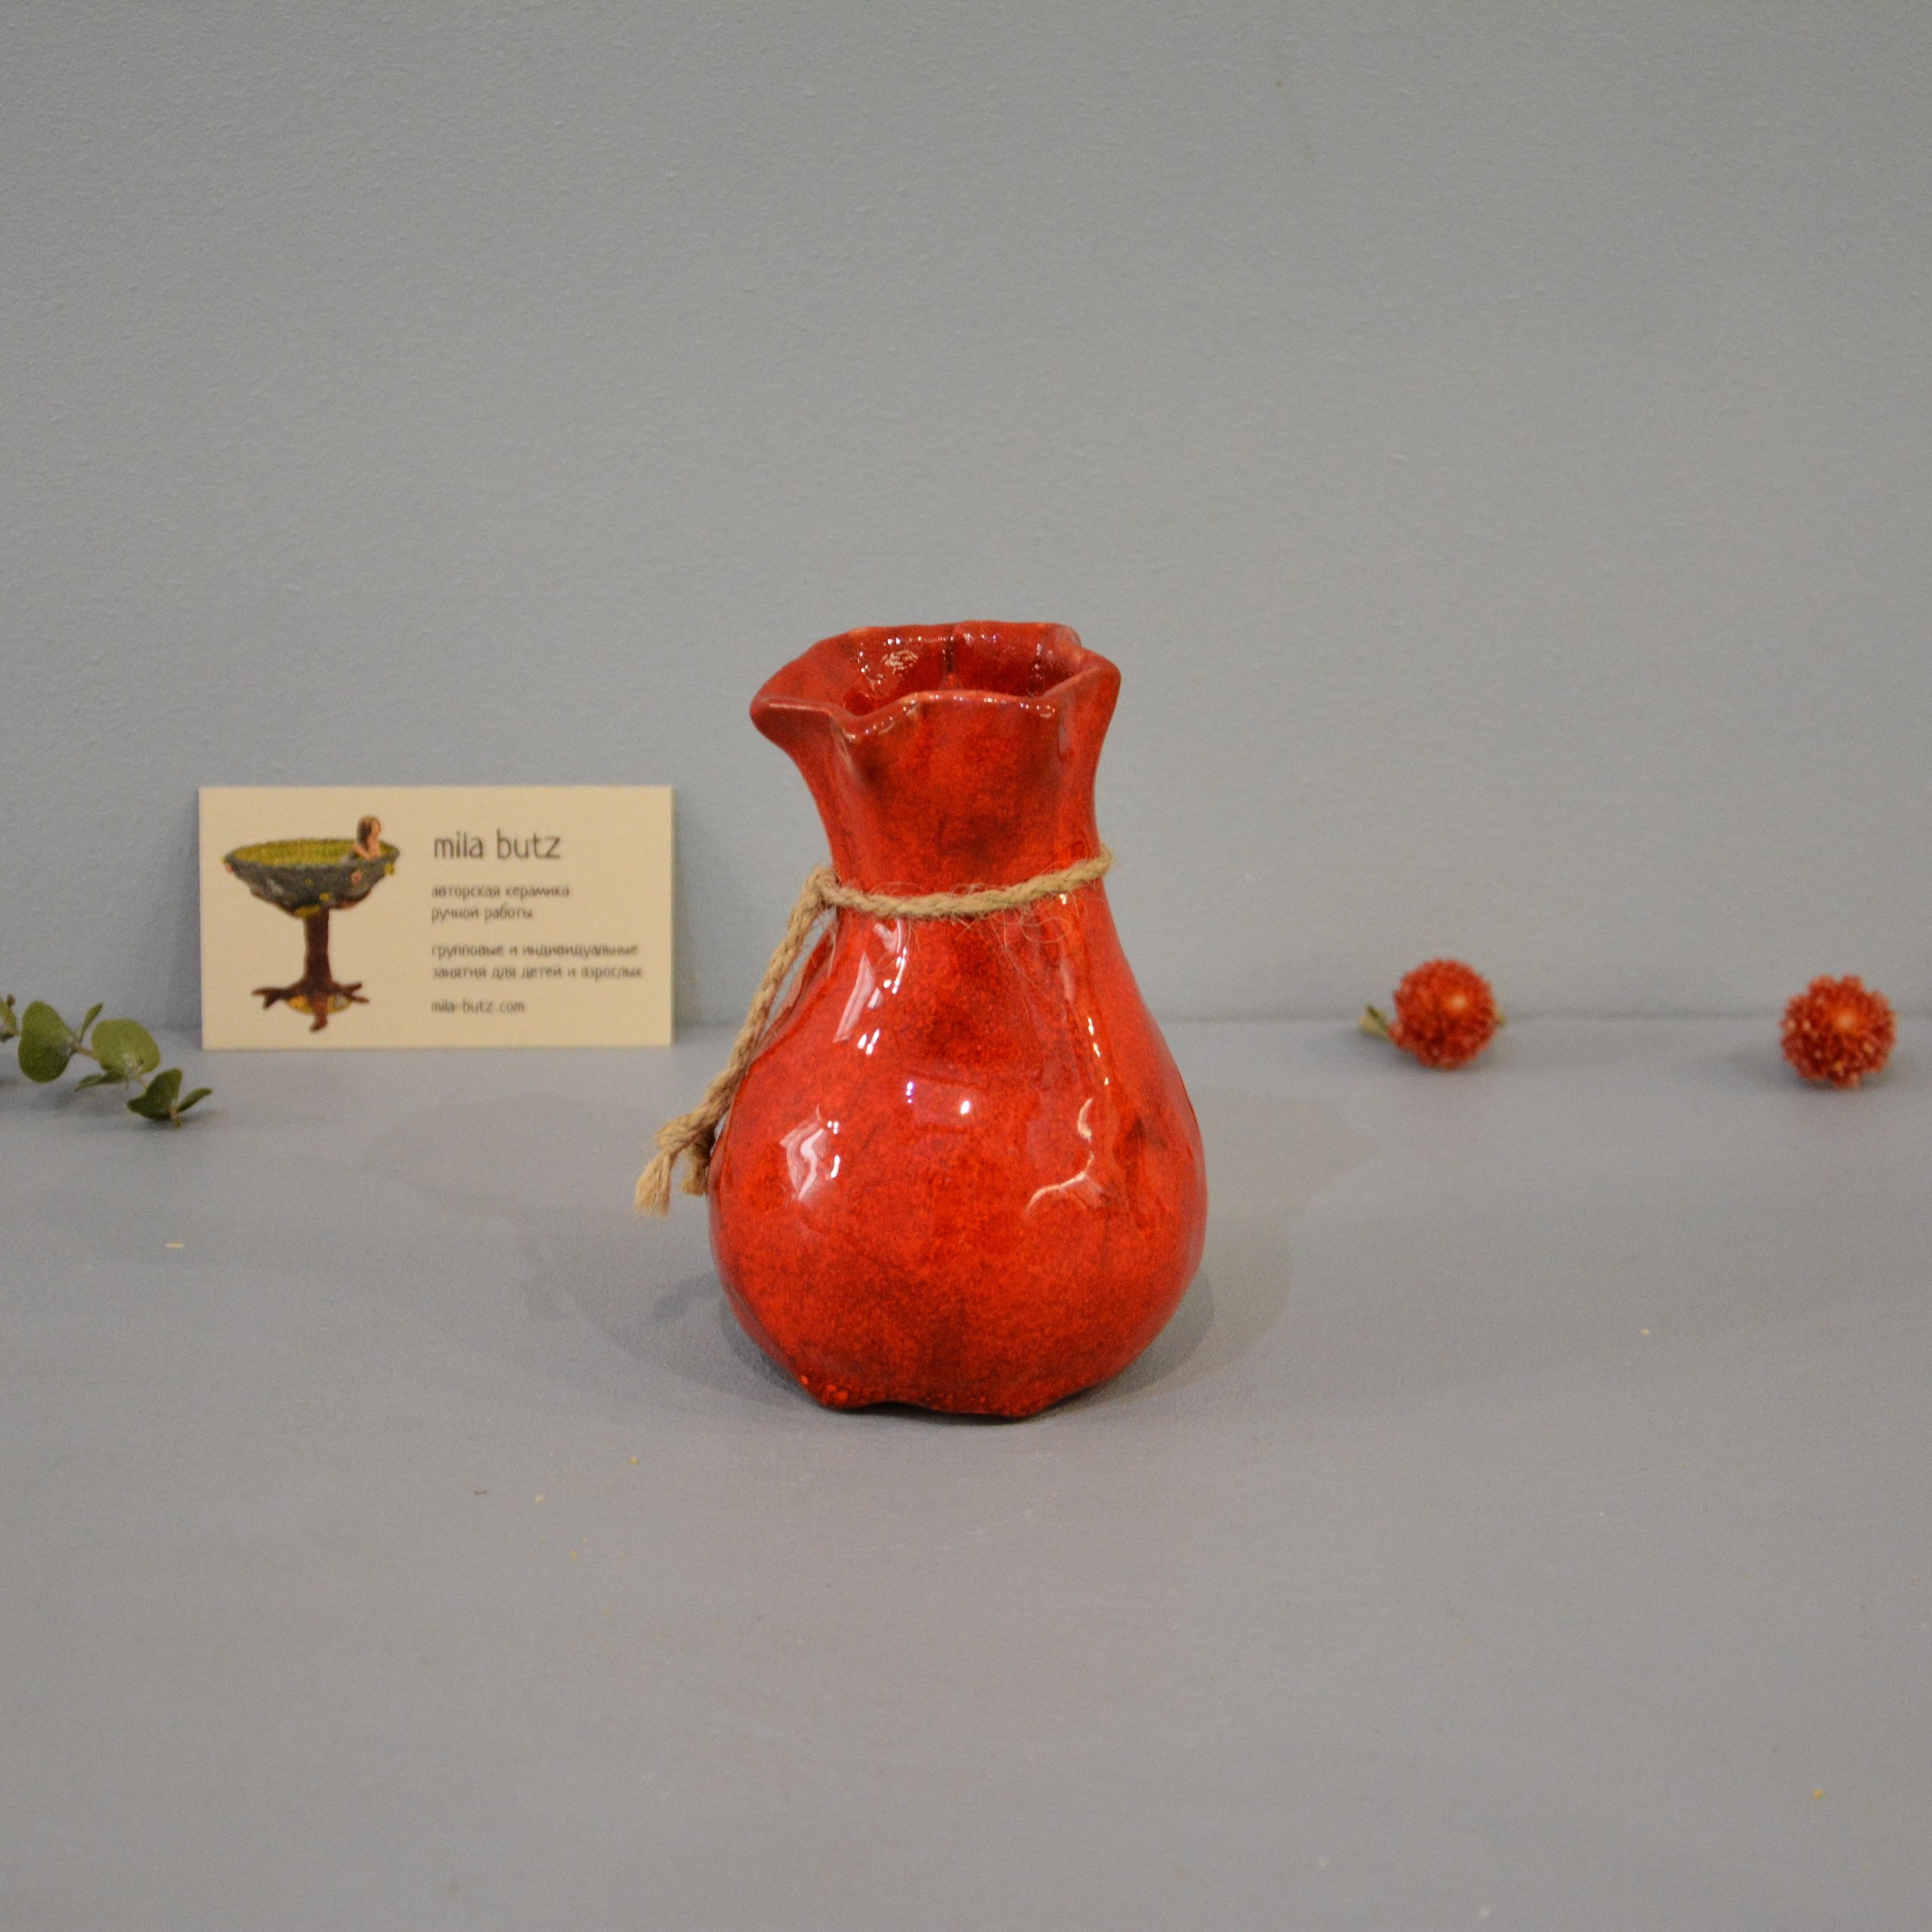 Interior vase «Red Bagful», height - 12 cm, color - red. Photo 1437-3840-3840.